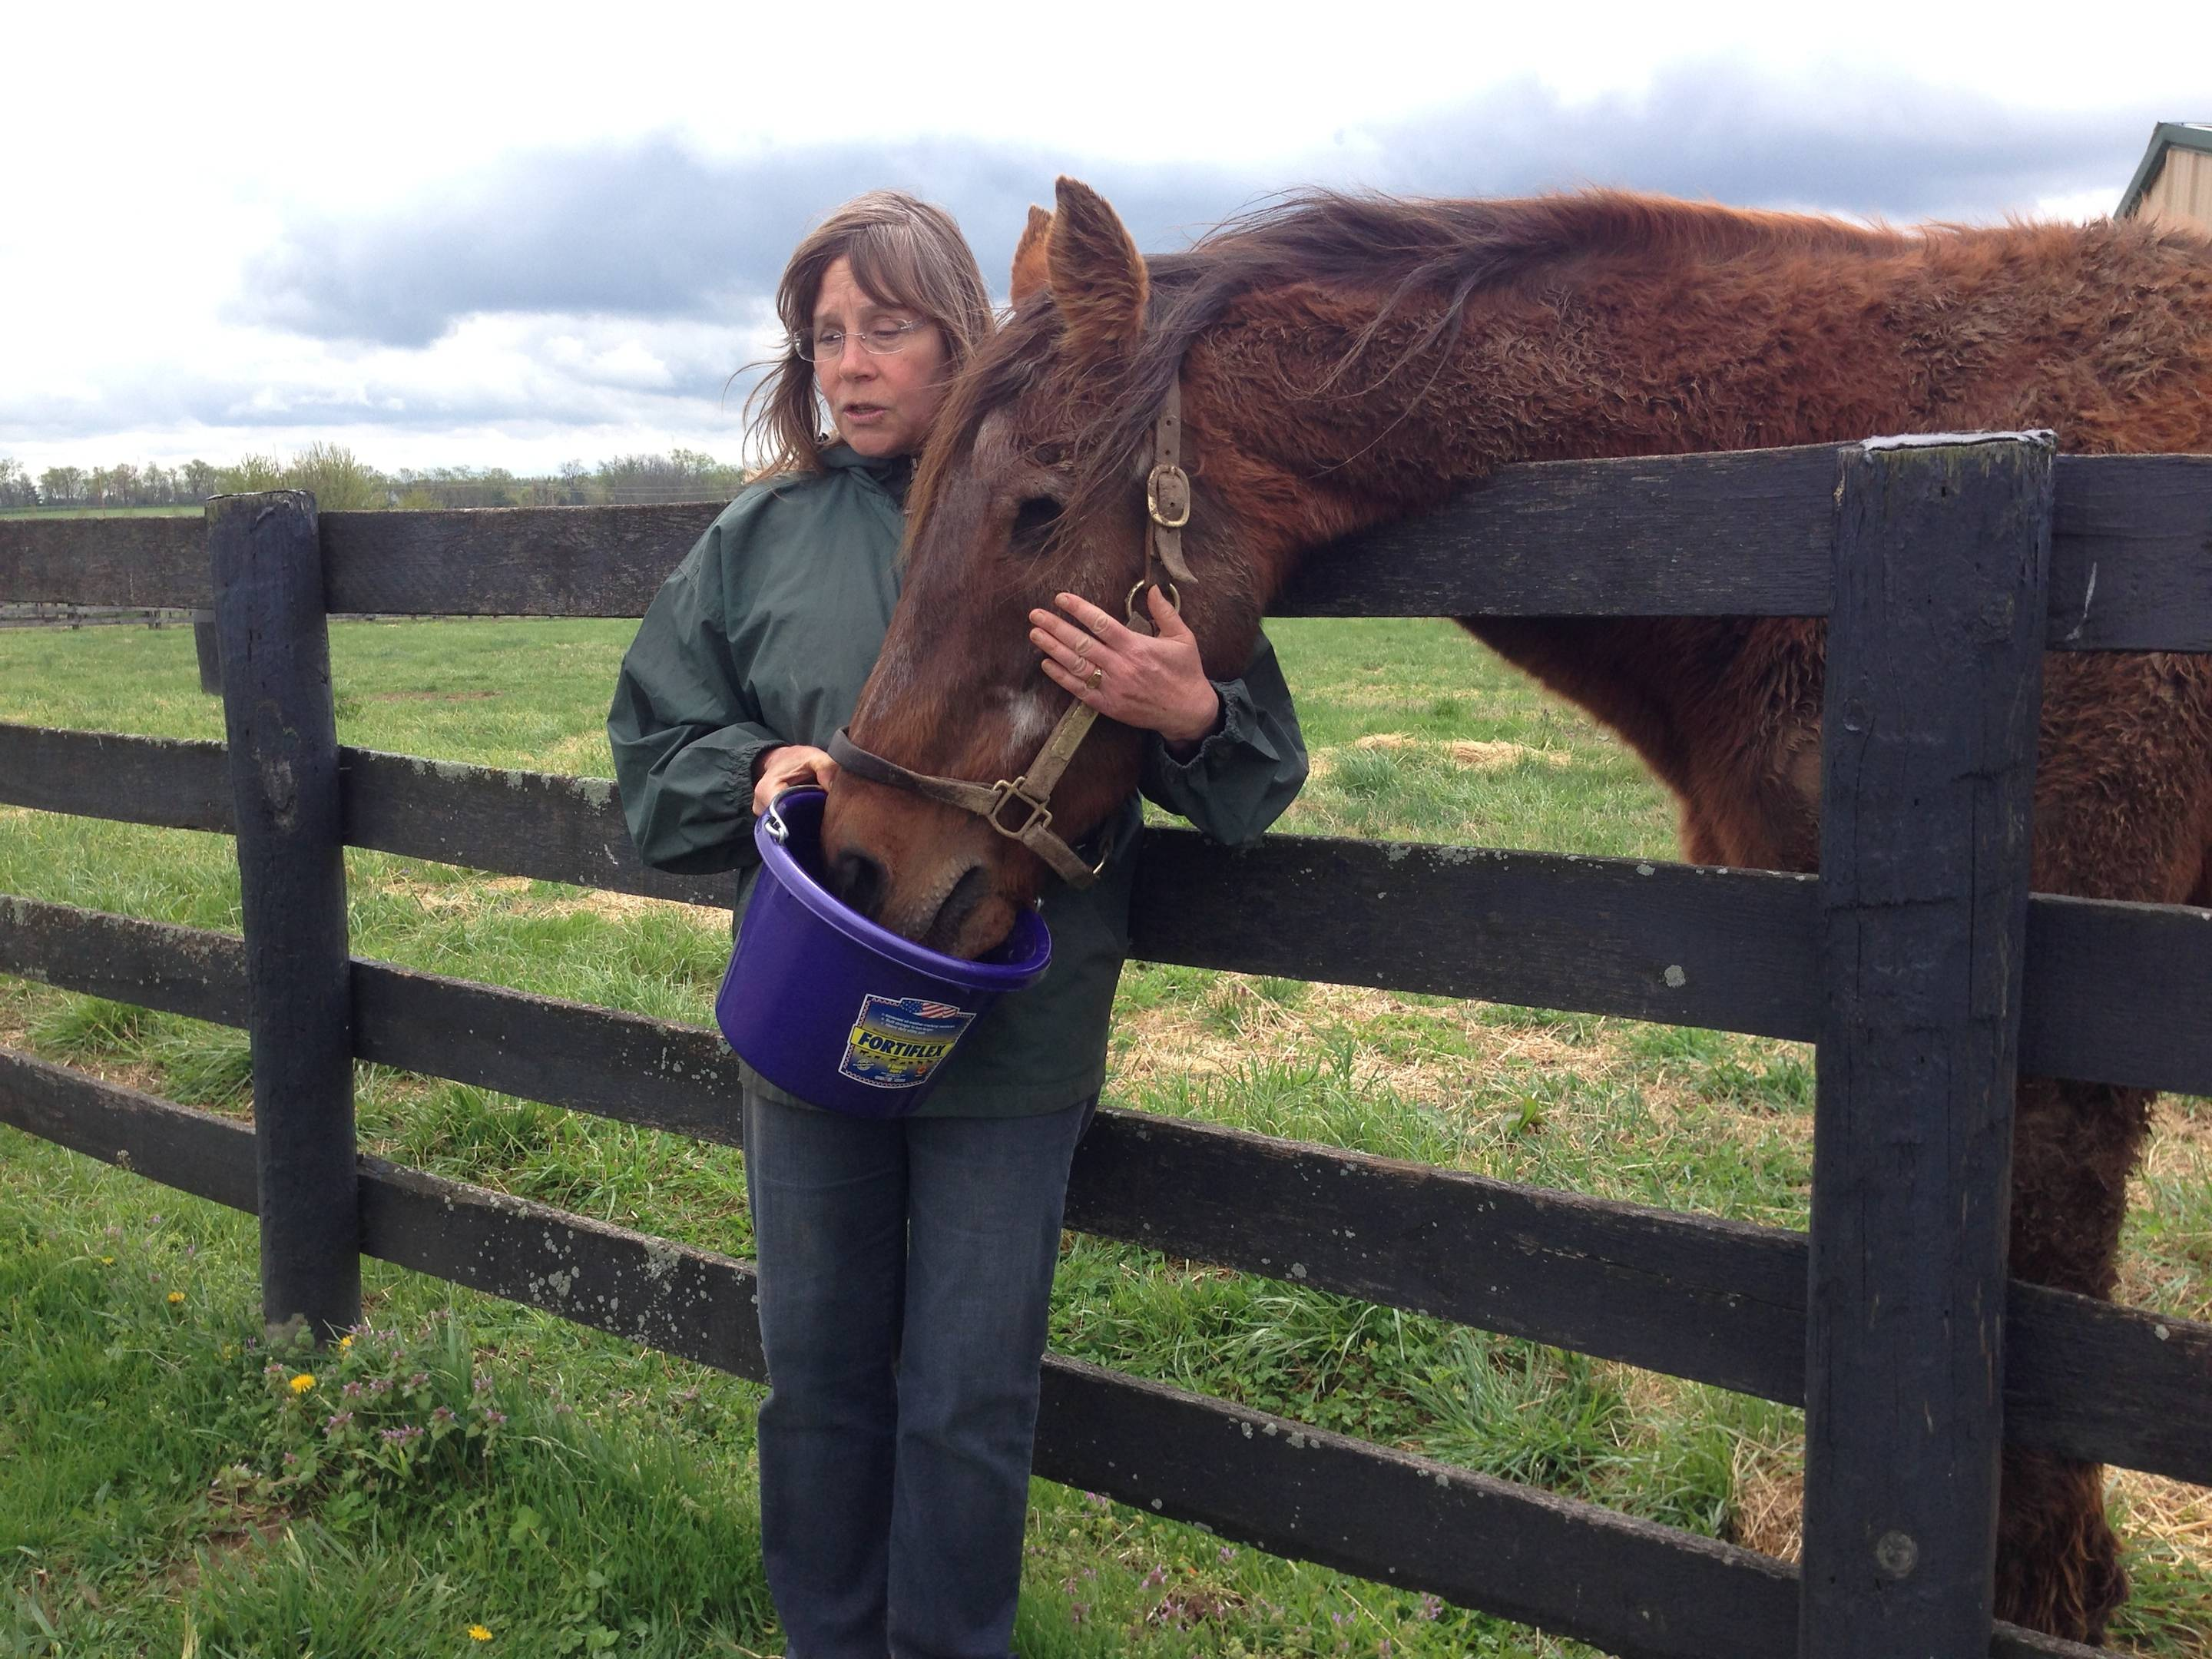 Beth Shannon, a volunteer guide at Old Friends farm in Georgetown, Ky., feeds Ogygian some carrots on April 25, 2014. Ogygian, a 31-year-old former champion racehorse, was brought back from Japan in 2005.